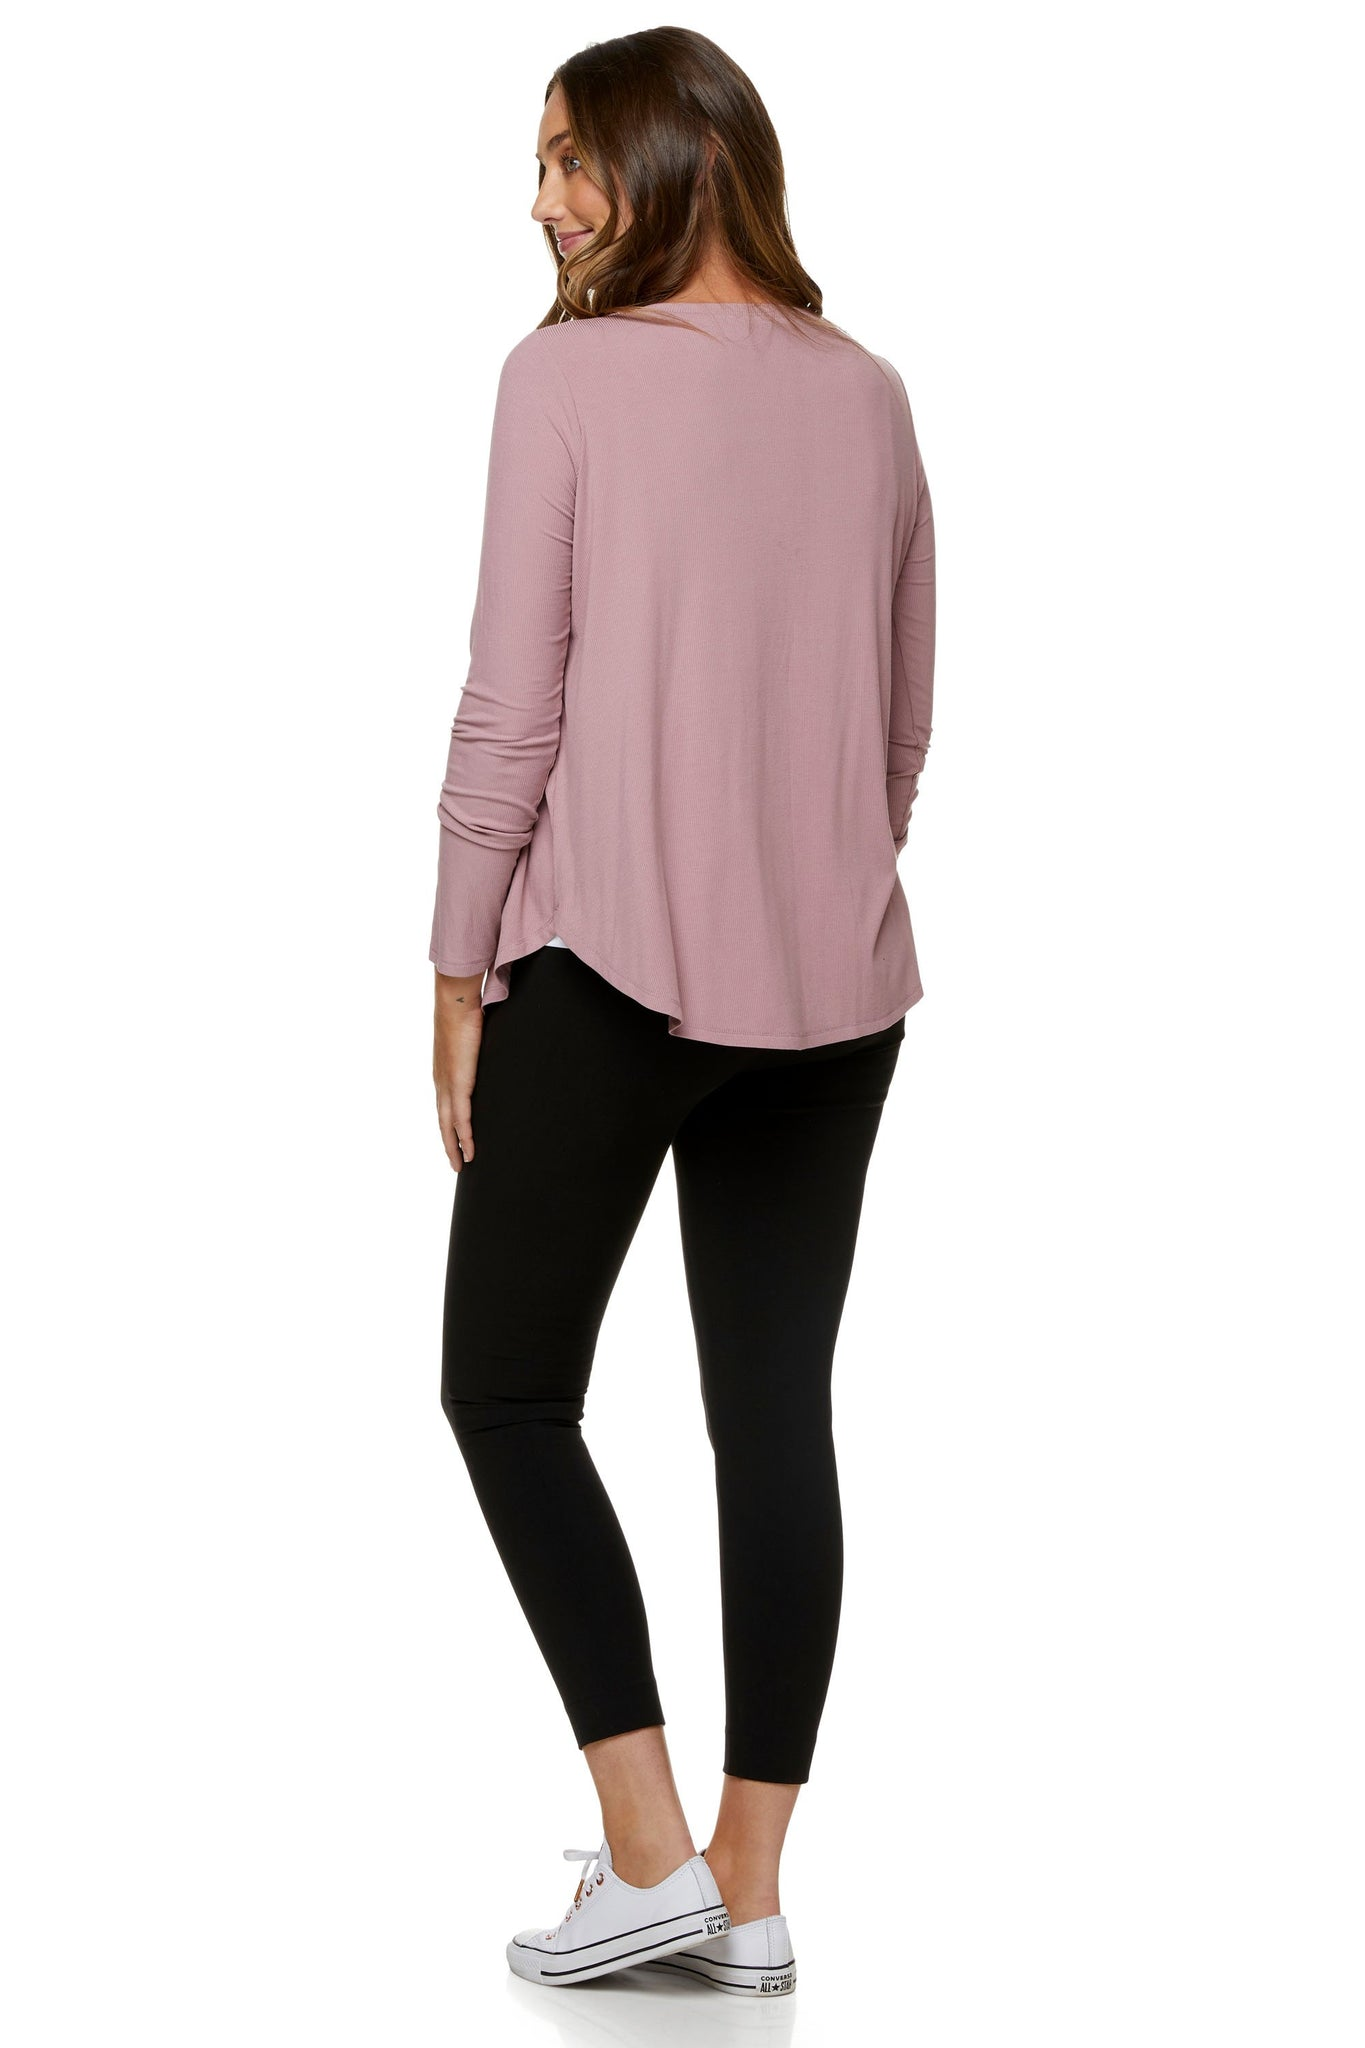 Pink long sleeve nursing top 7